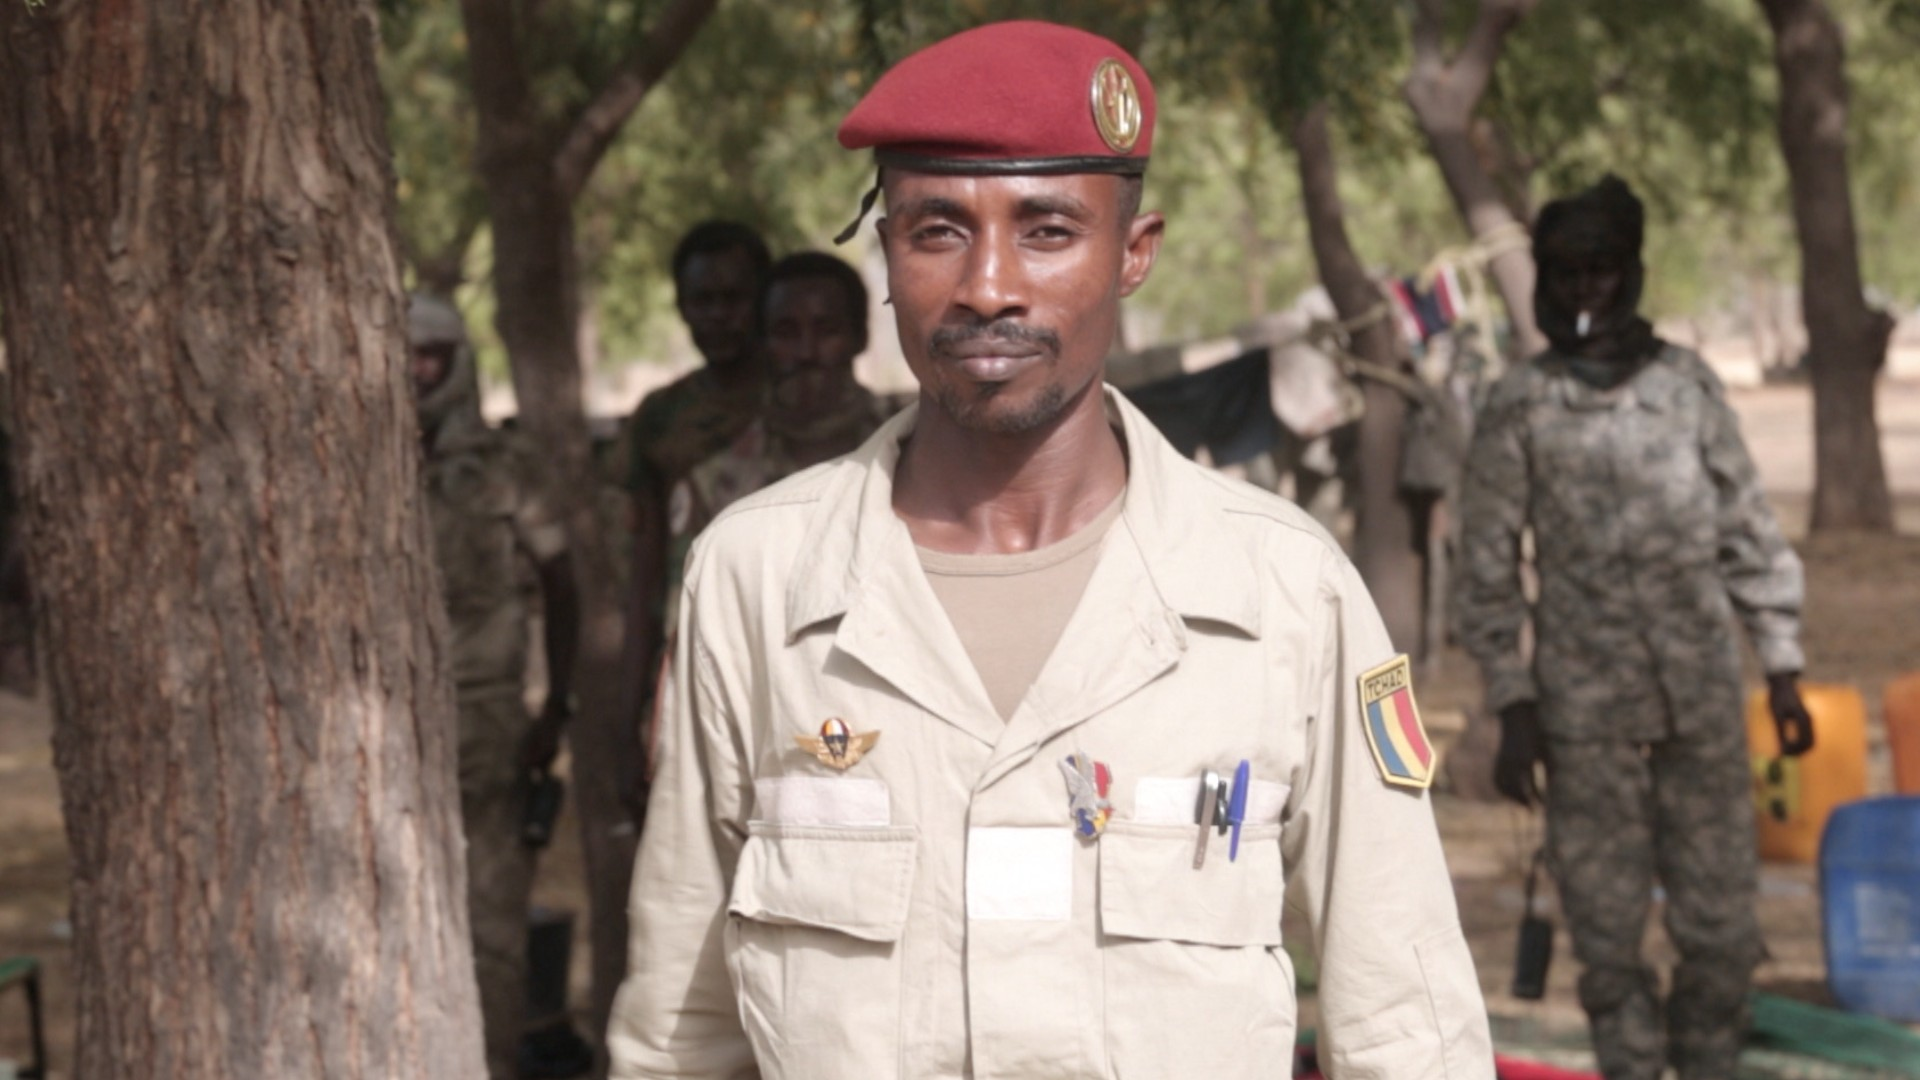 Beheadings and Destruction (Excerpt from 'Chad's Fight Against Boko Haram')